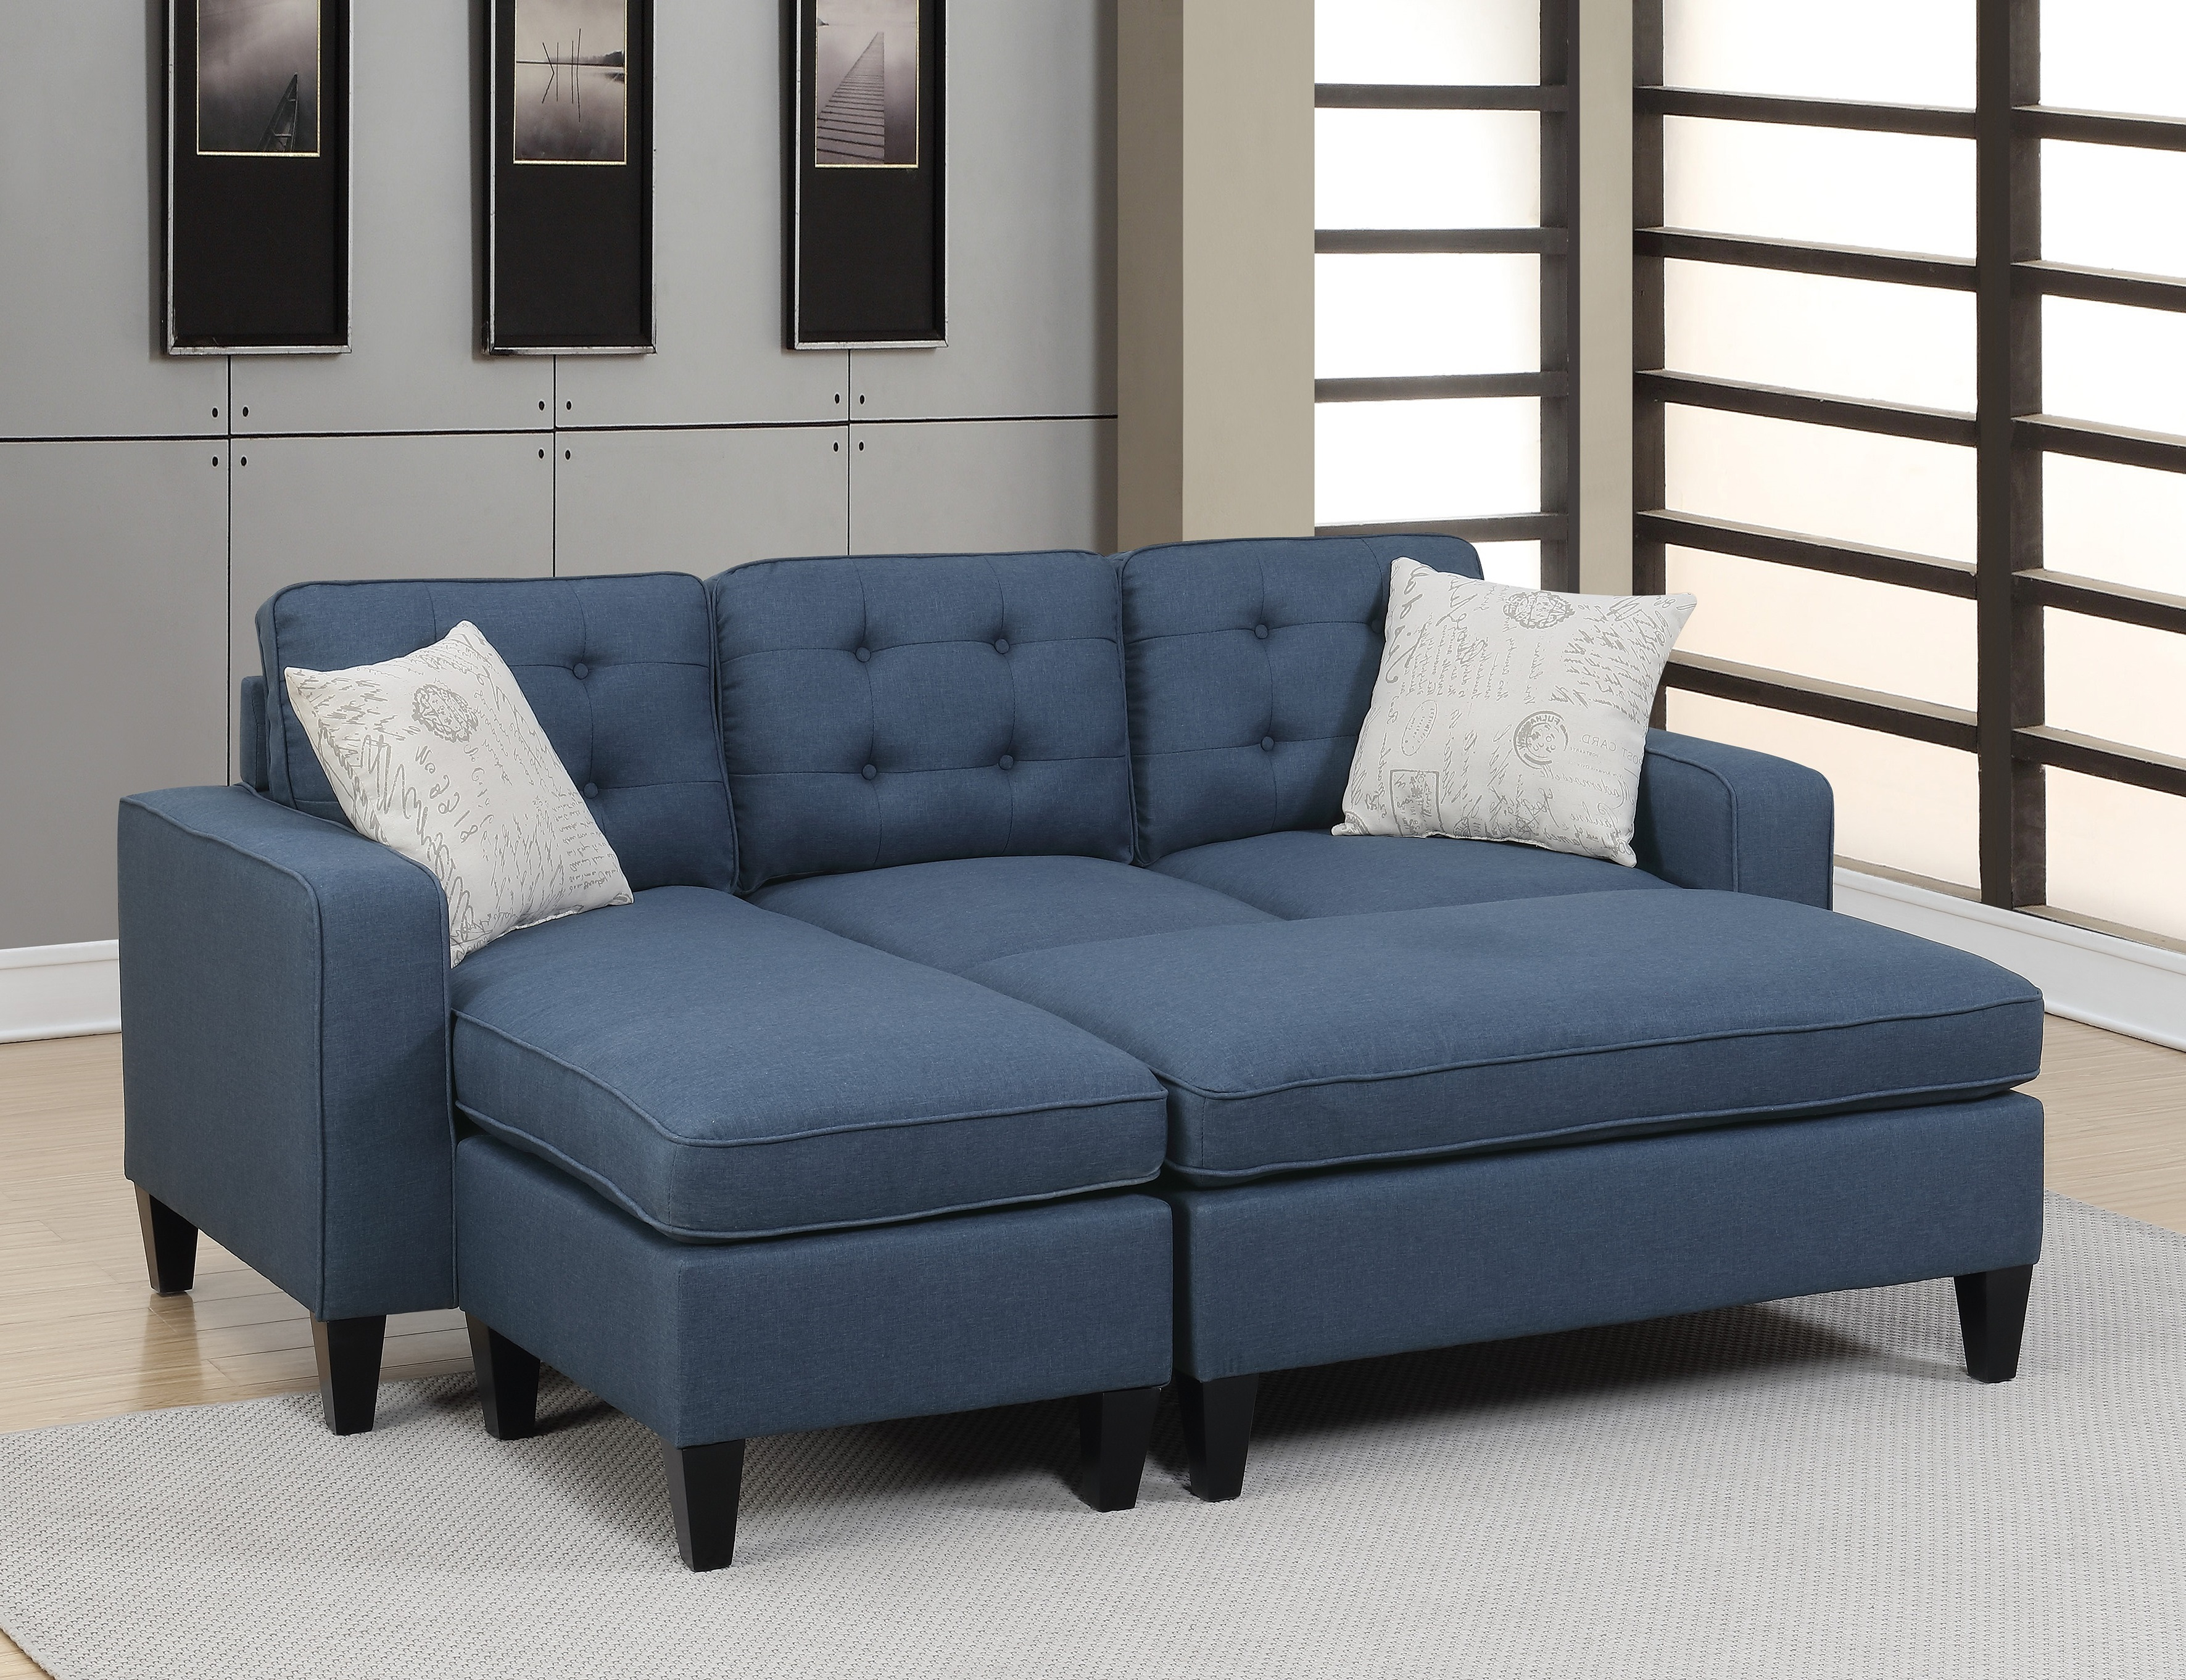 Admirable Sectionals Reversible Sectional Sofa W Xl Ottoman Modern Navy Polyfiber Living Room Tufted Couch Machost Co Dining Chair Design Ideas Machostcouk